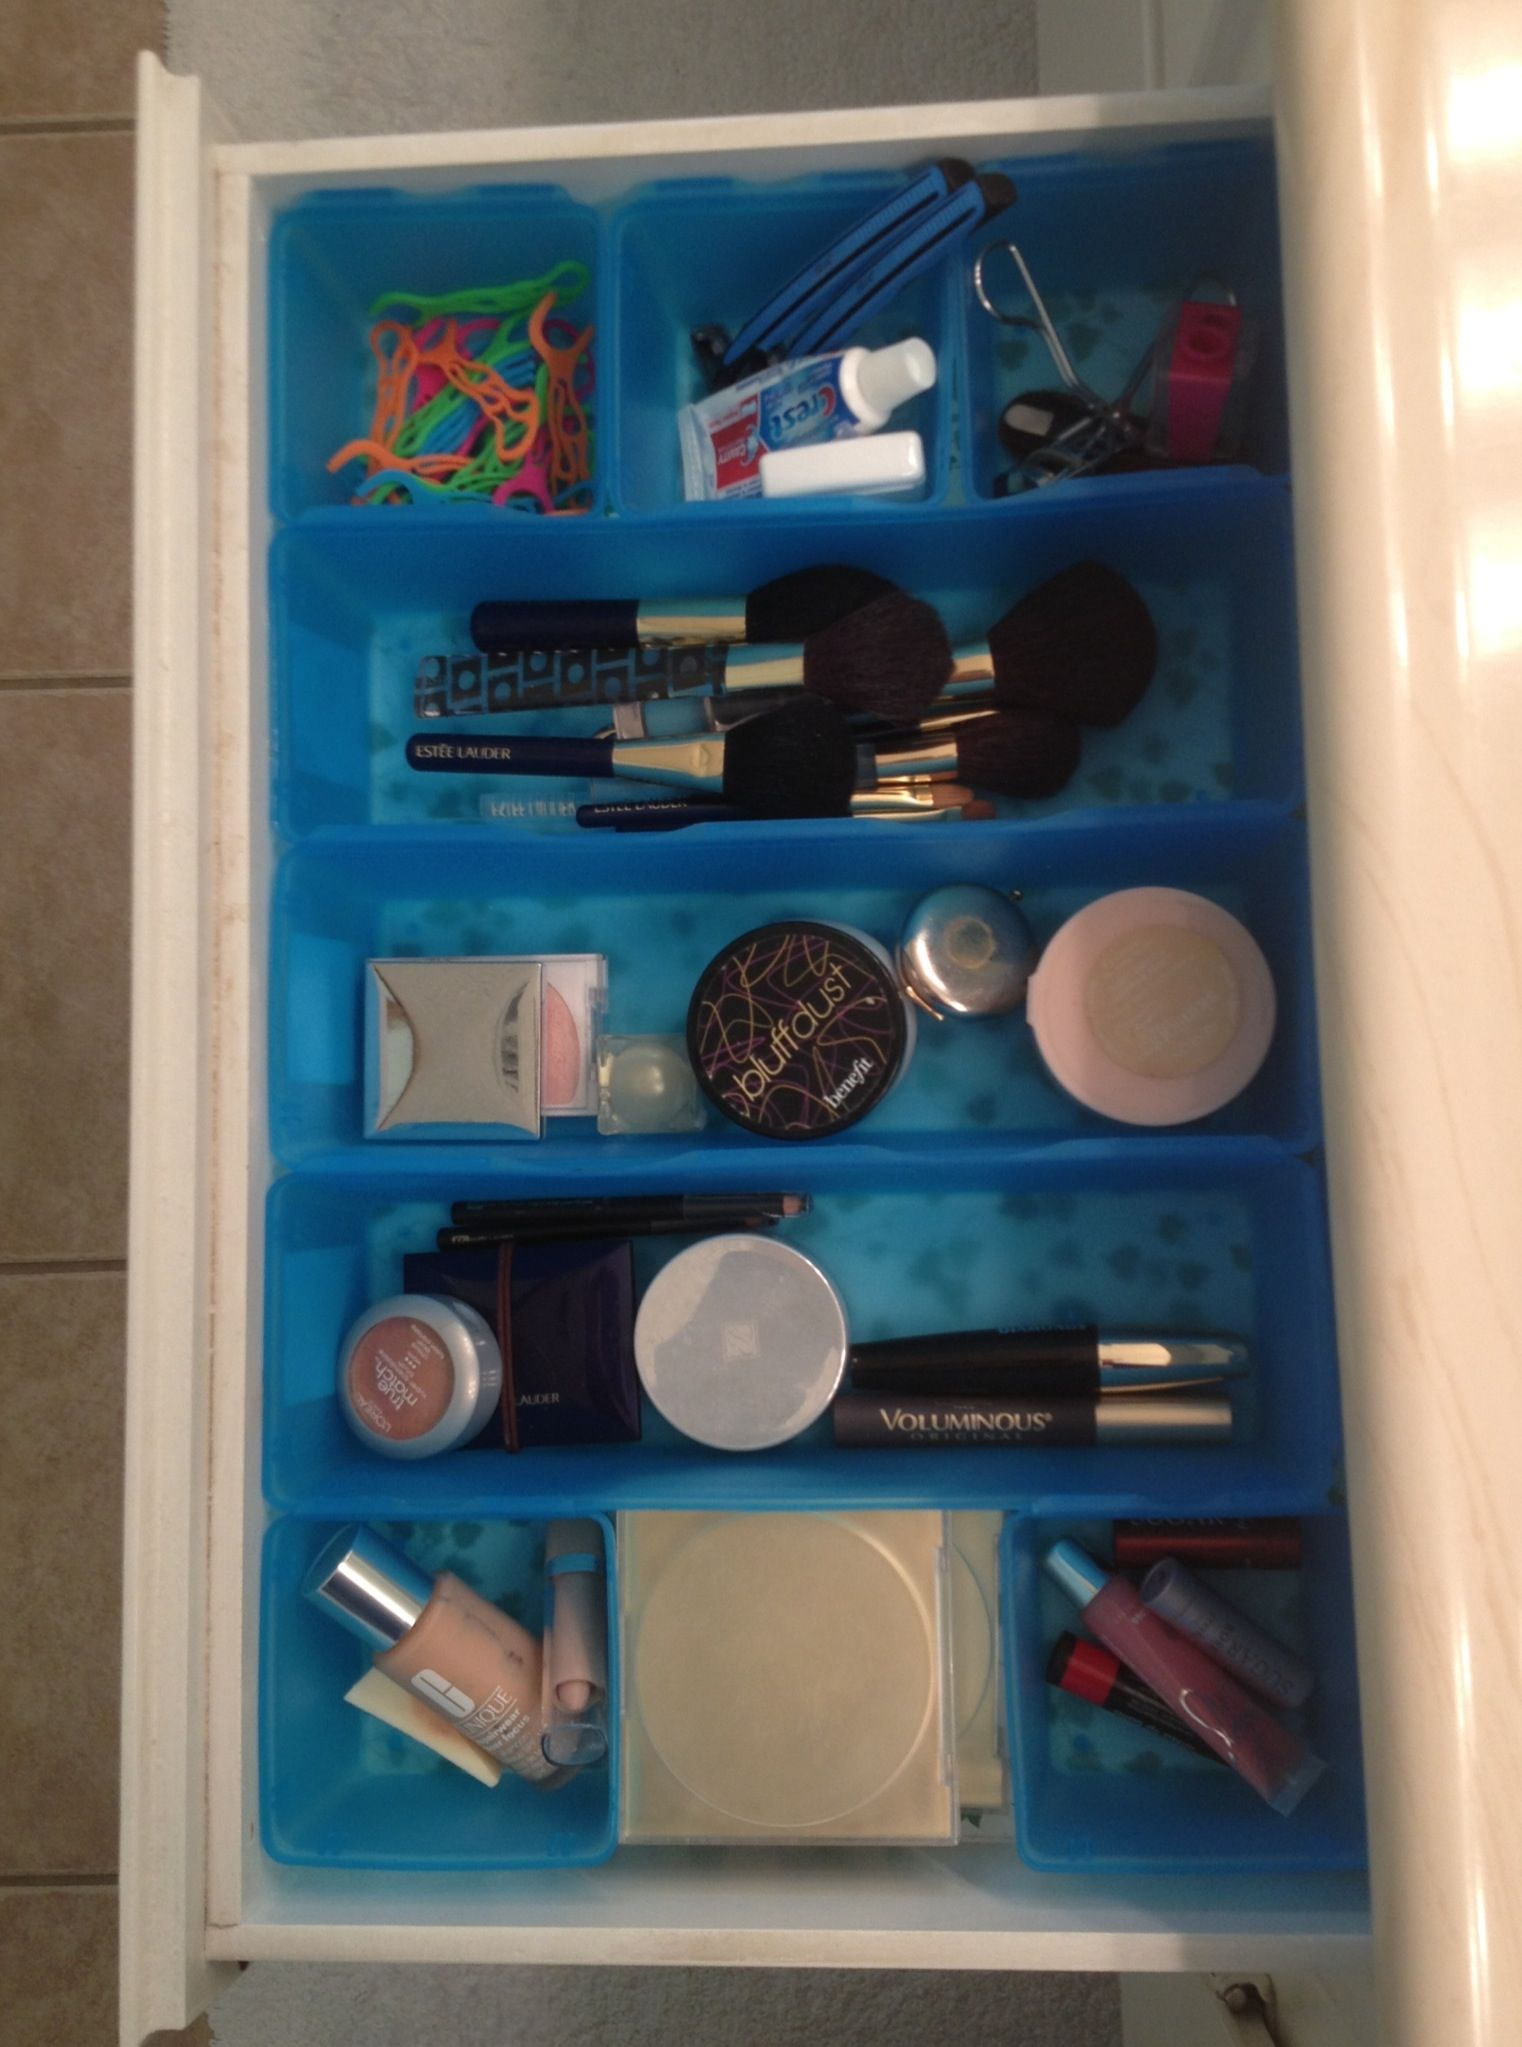 App Drawer Organizer I Found These Drawer Organizers For My Makeup Dollar Tree $3